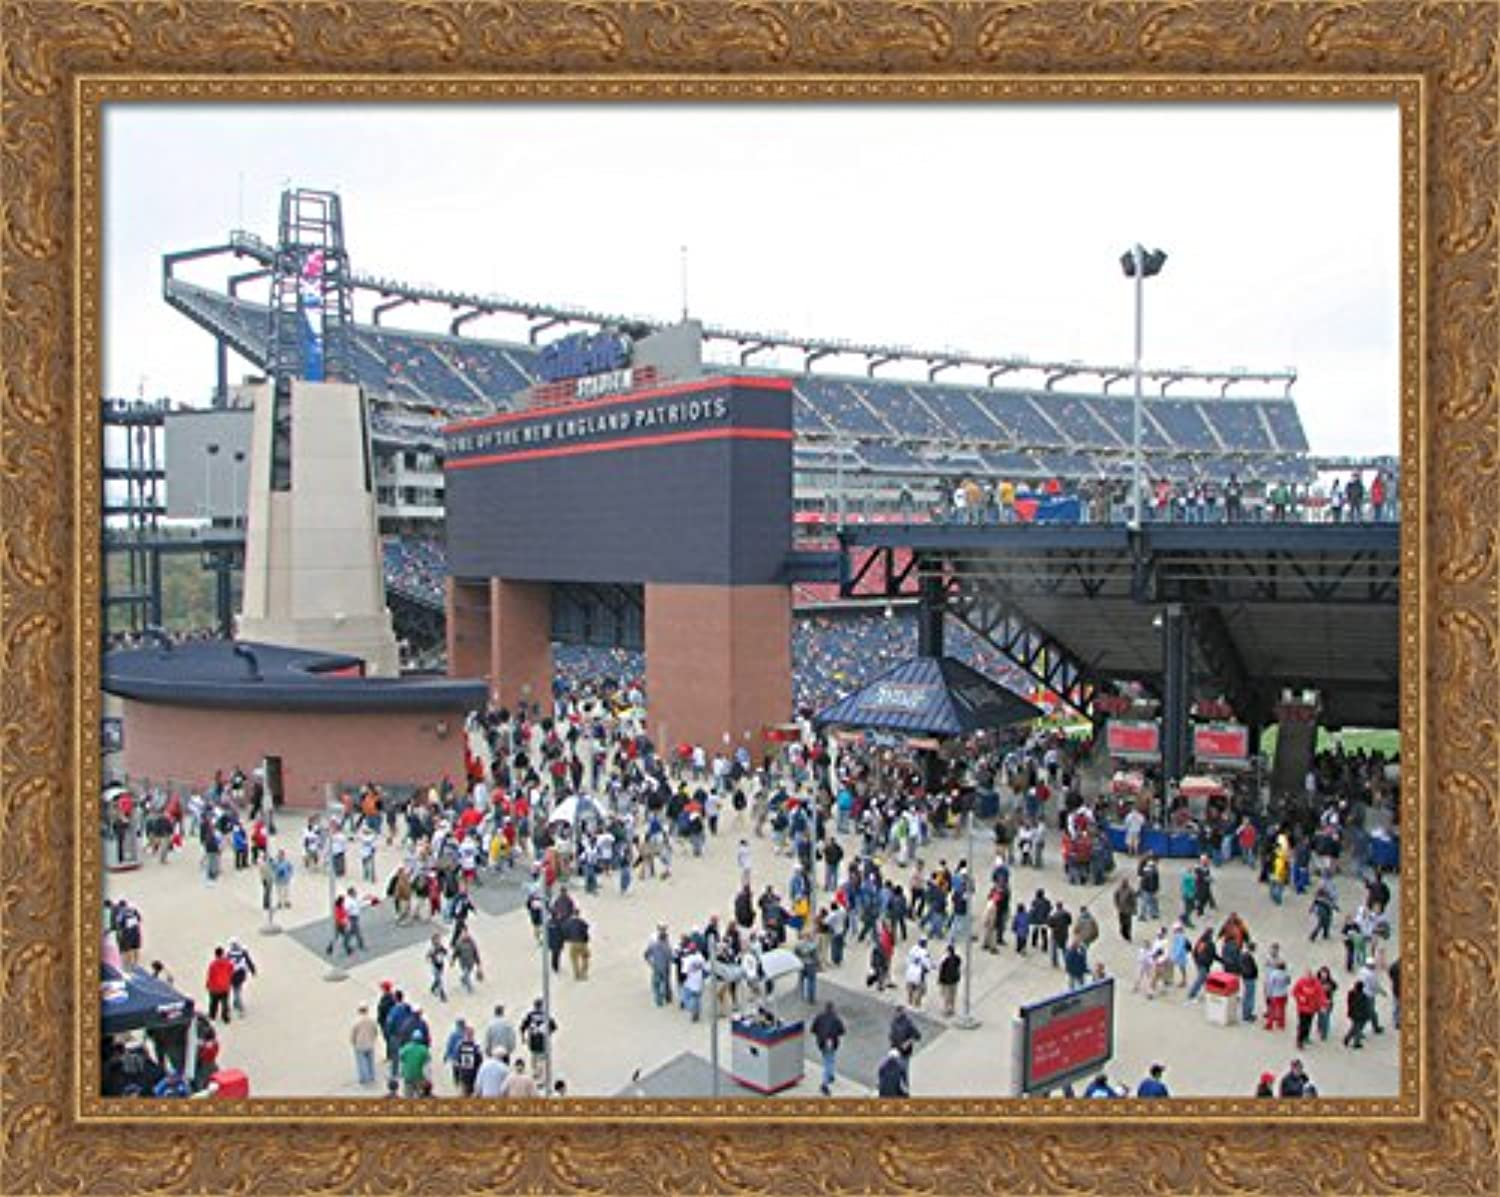 Gillette Stadium 36x28 Large gold Ornate Wood Framed Canvas ArtHome of the New England Patriots